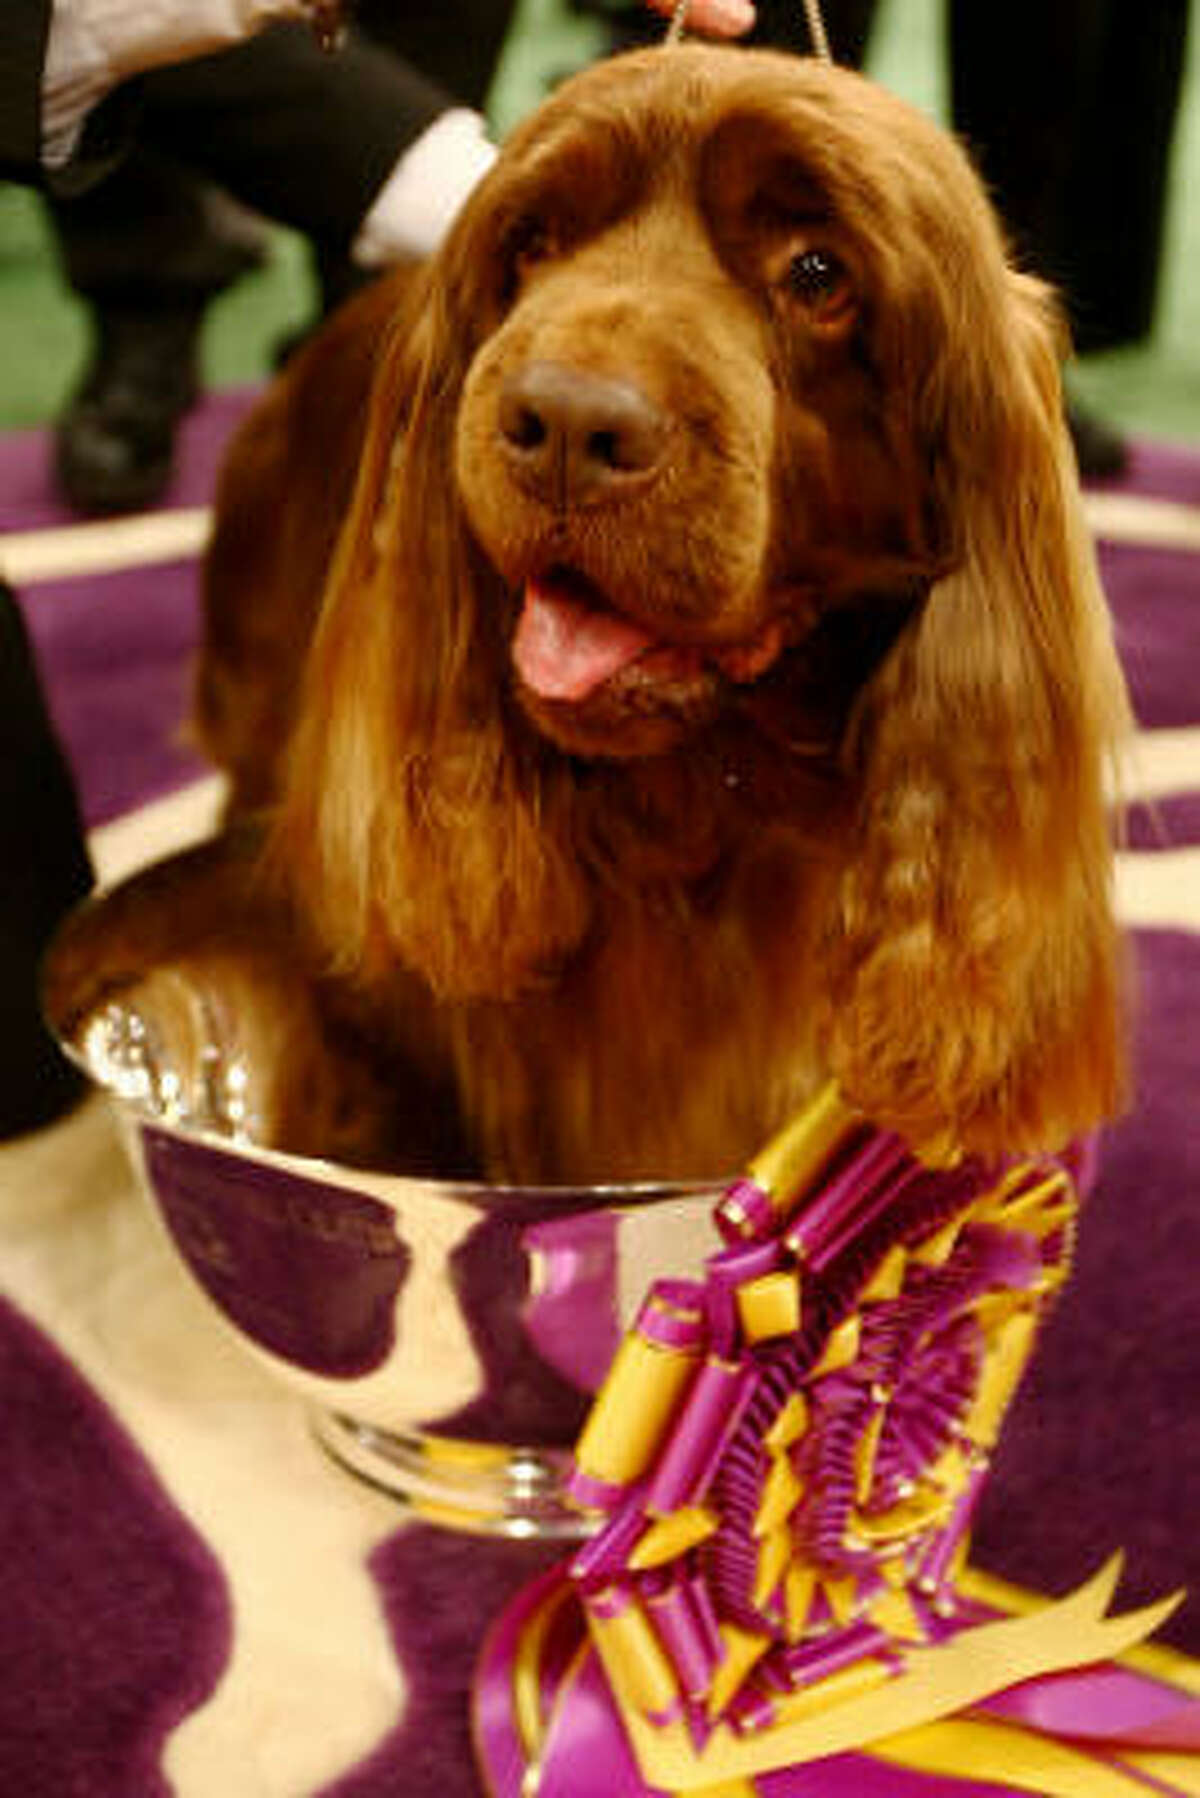 Stump, a Sussex spaniel from Houston, sits in the cup he'll take home for winning Best in Show at the Westminster Dog Show Tuesday night. Over 2,500 dogs from 48 states competed.